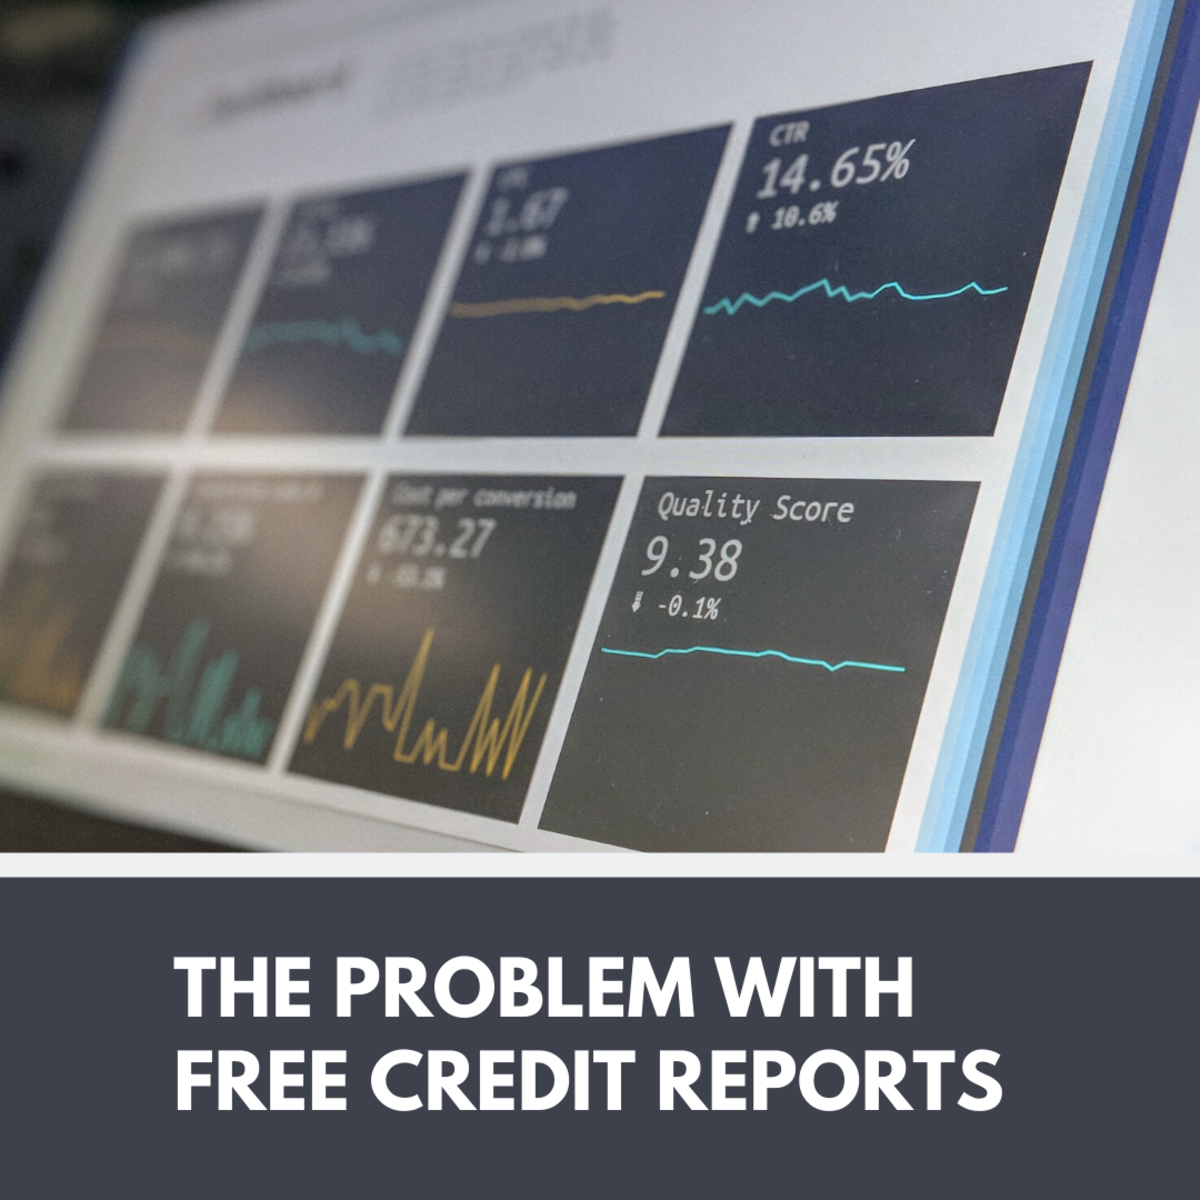 Before making a big purchase, such as a car or a house, it's a good idea to check your credit score. Read to learn the smartest way to check your score.